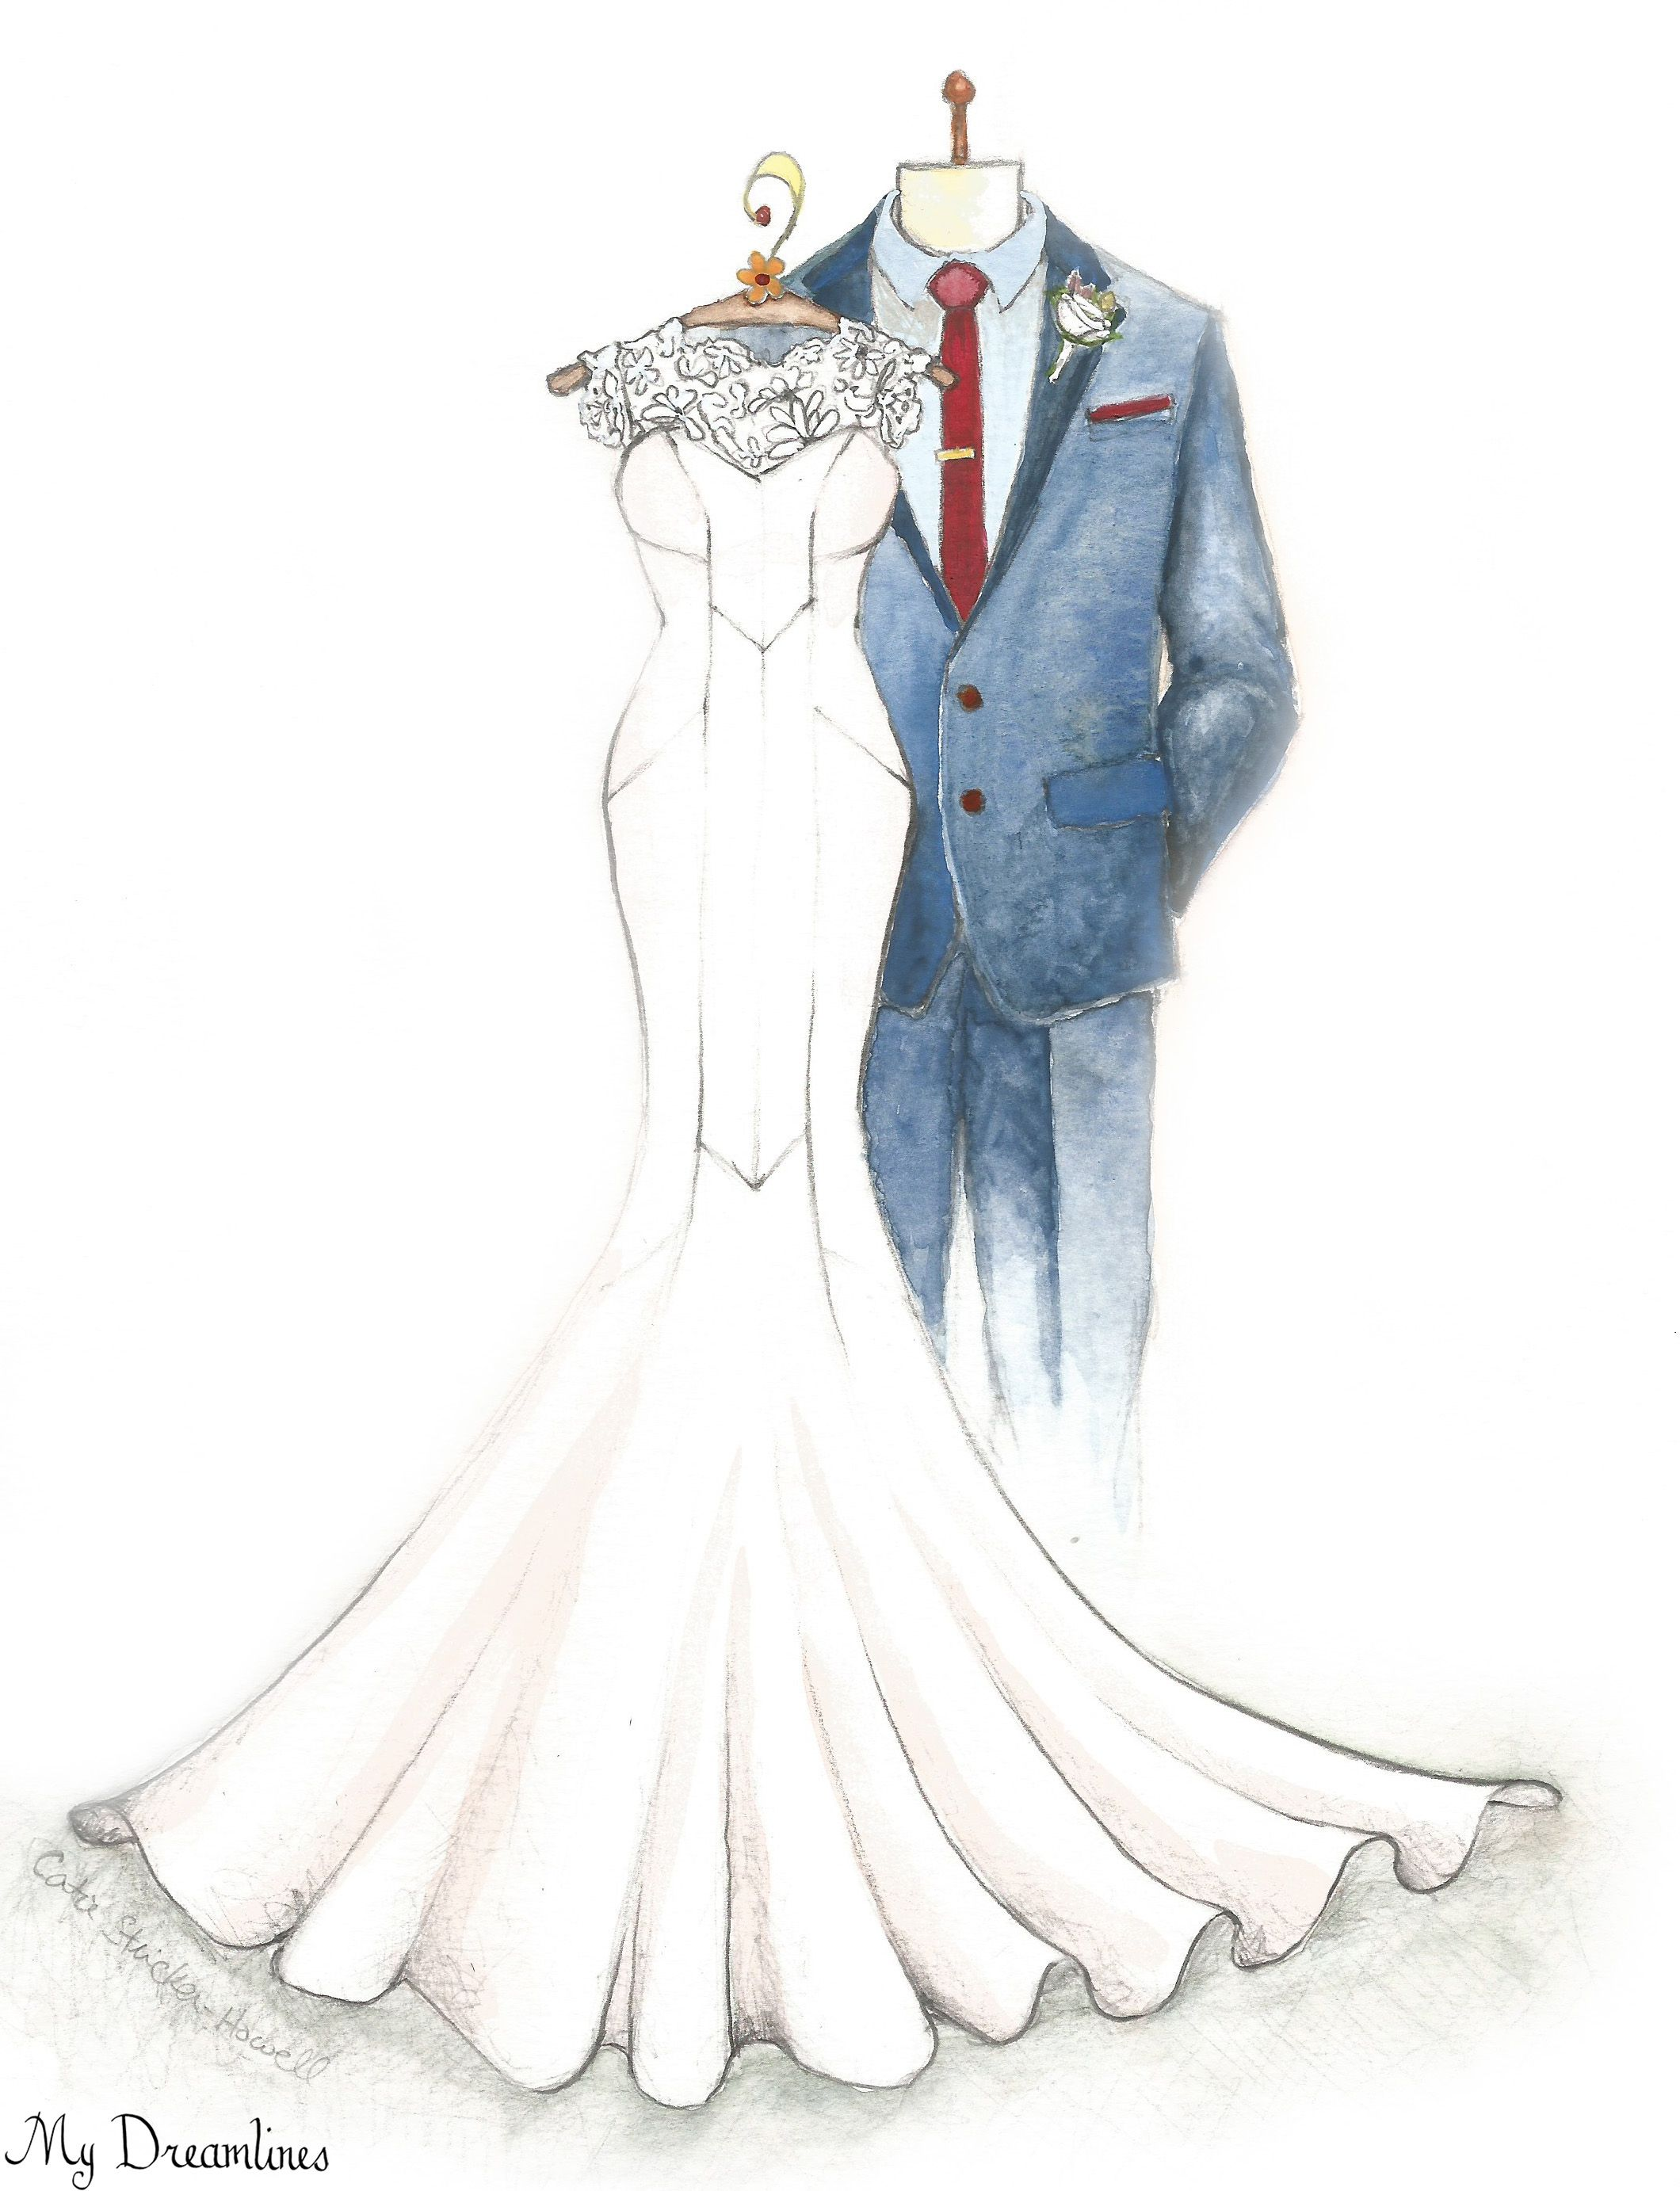 Her Wedding Dress Sketched And Framed Given For A Gift From The Groom To